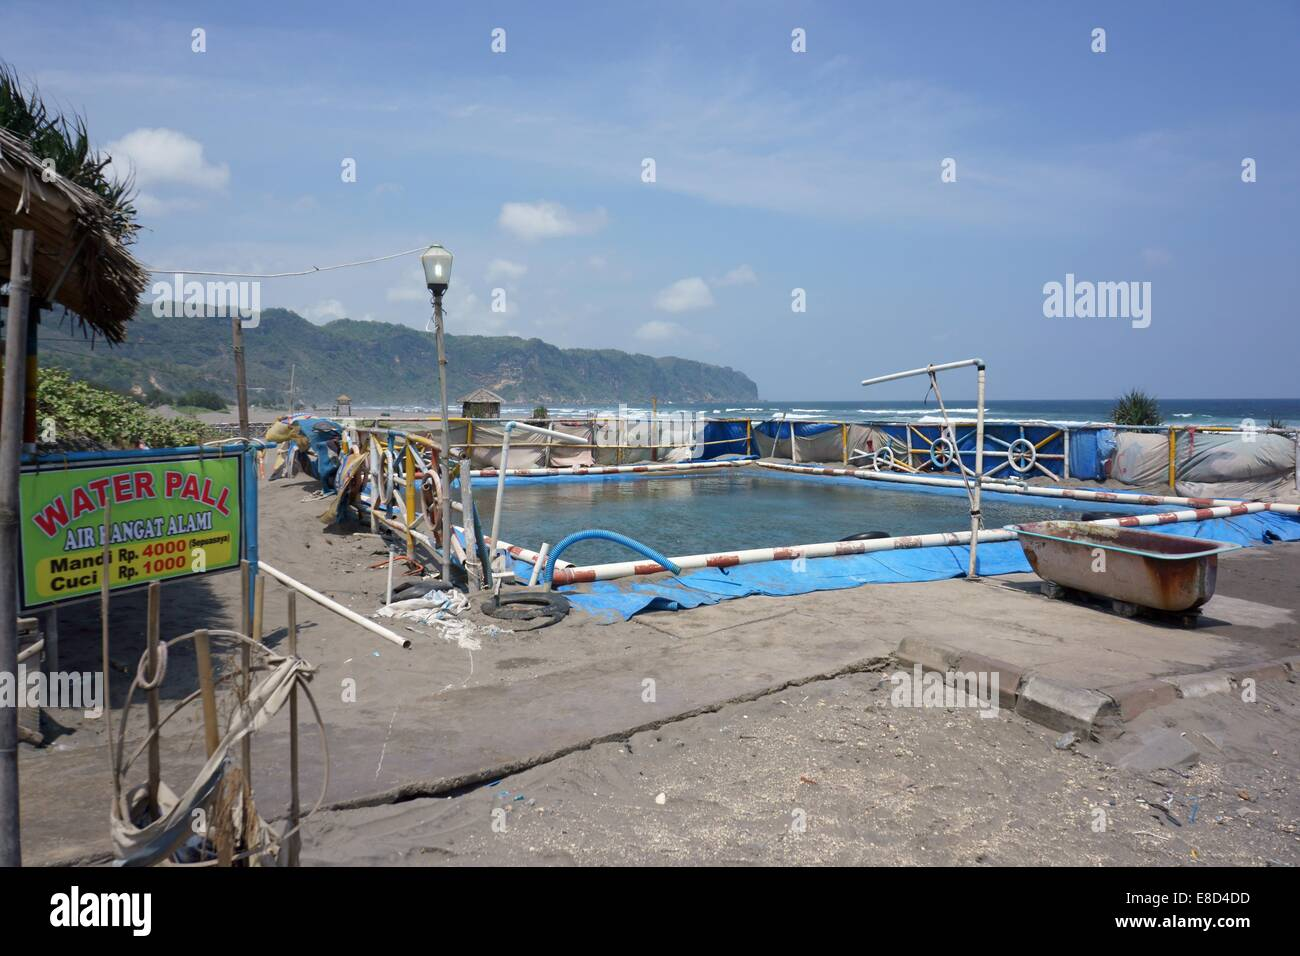 Pool Dimension Stock Photos U0026 Pool Dimension Stock Images ...